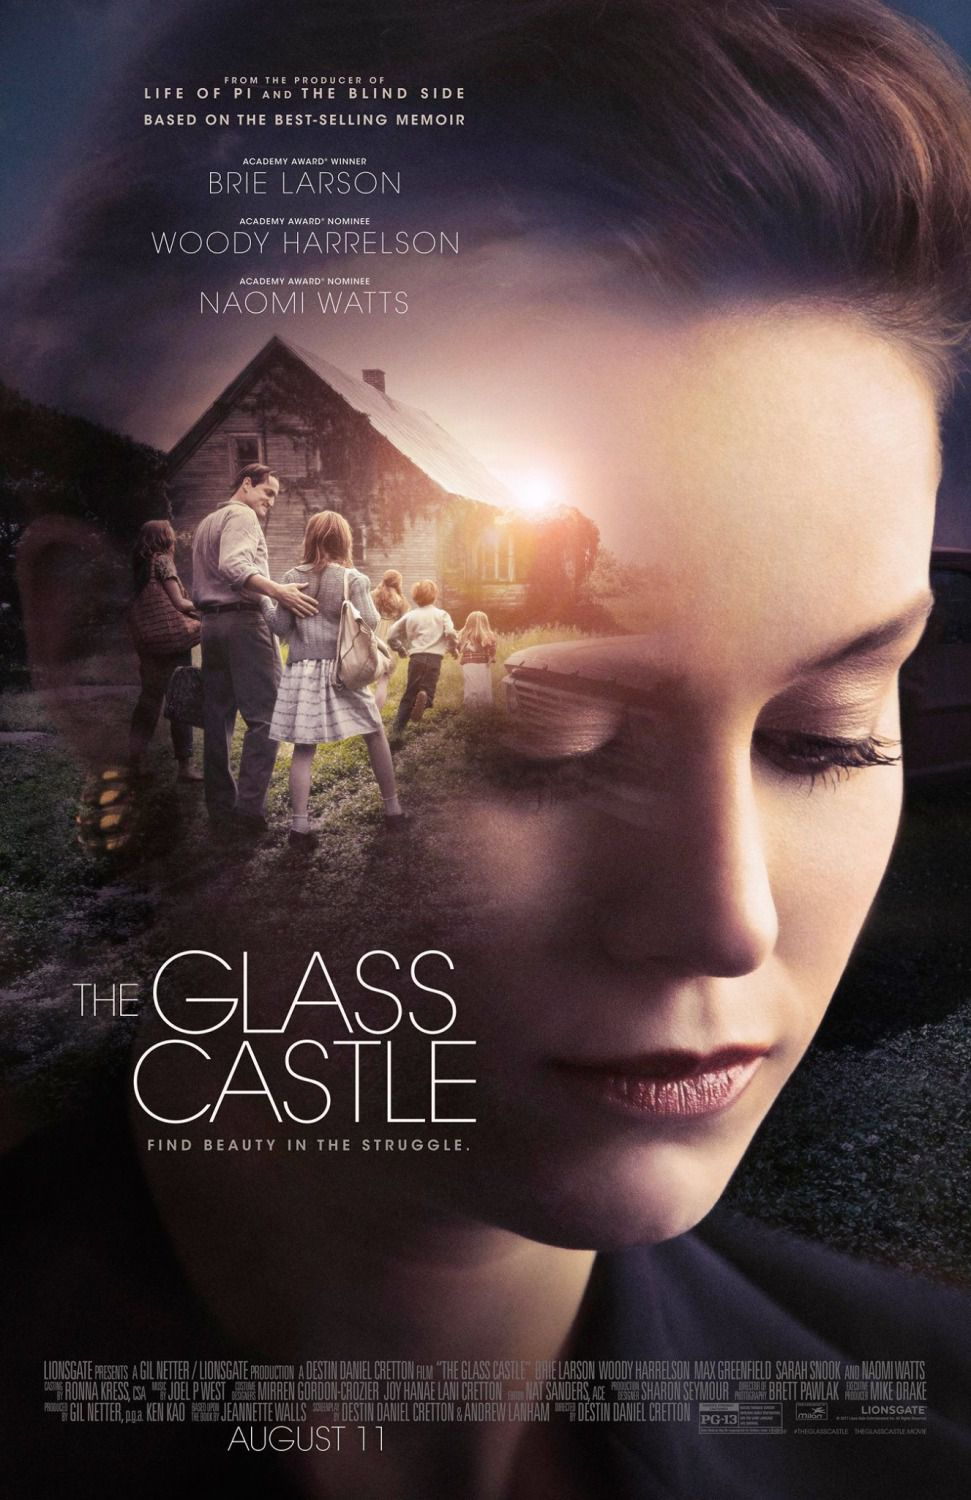 Glass Castle - home goes wherever we go - Brie Larson - Woody Harrelson - Naomi Watts - film poster